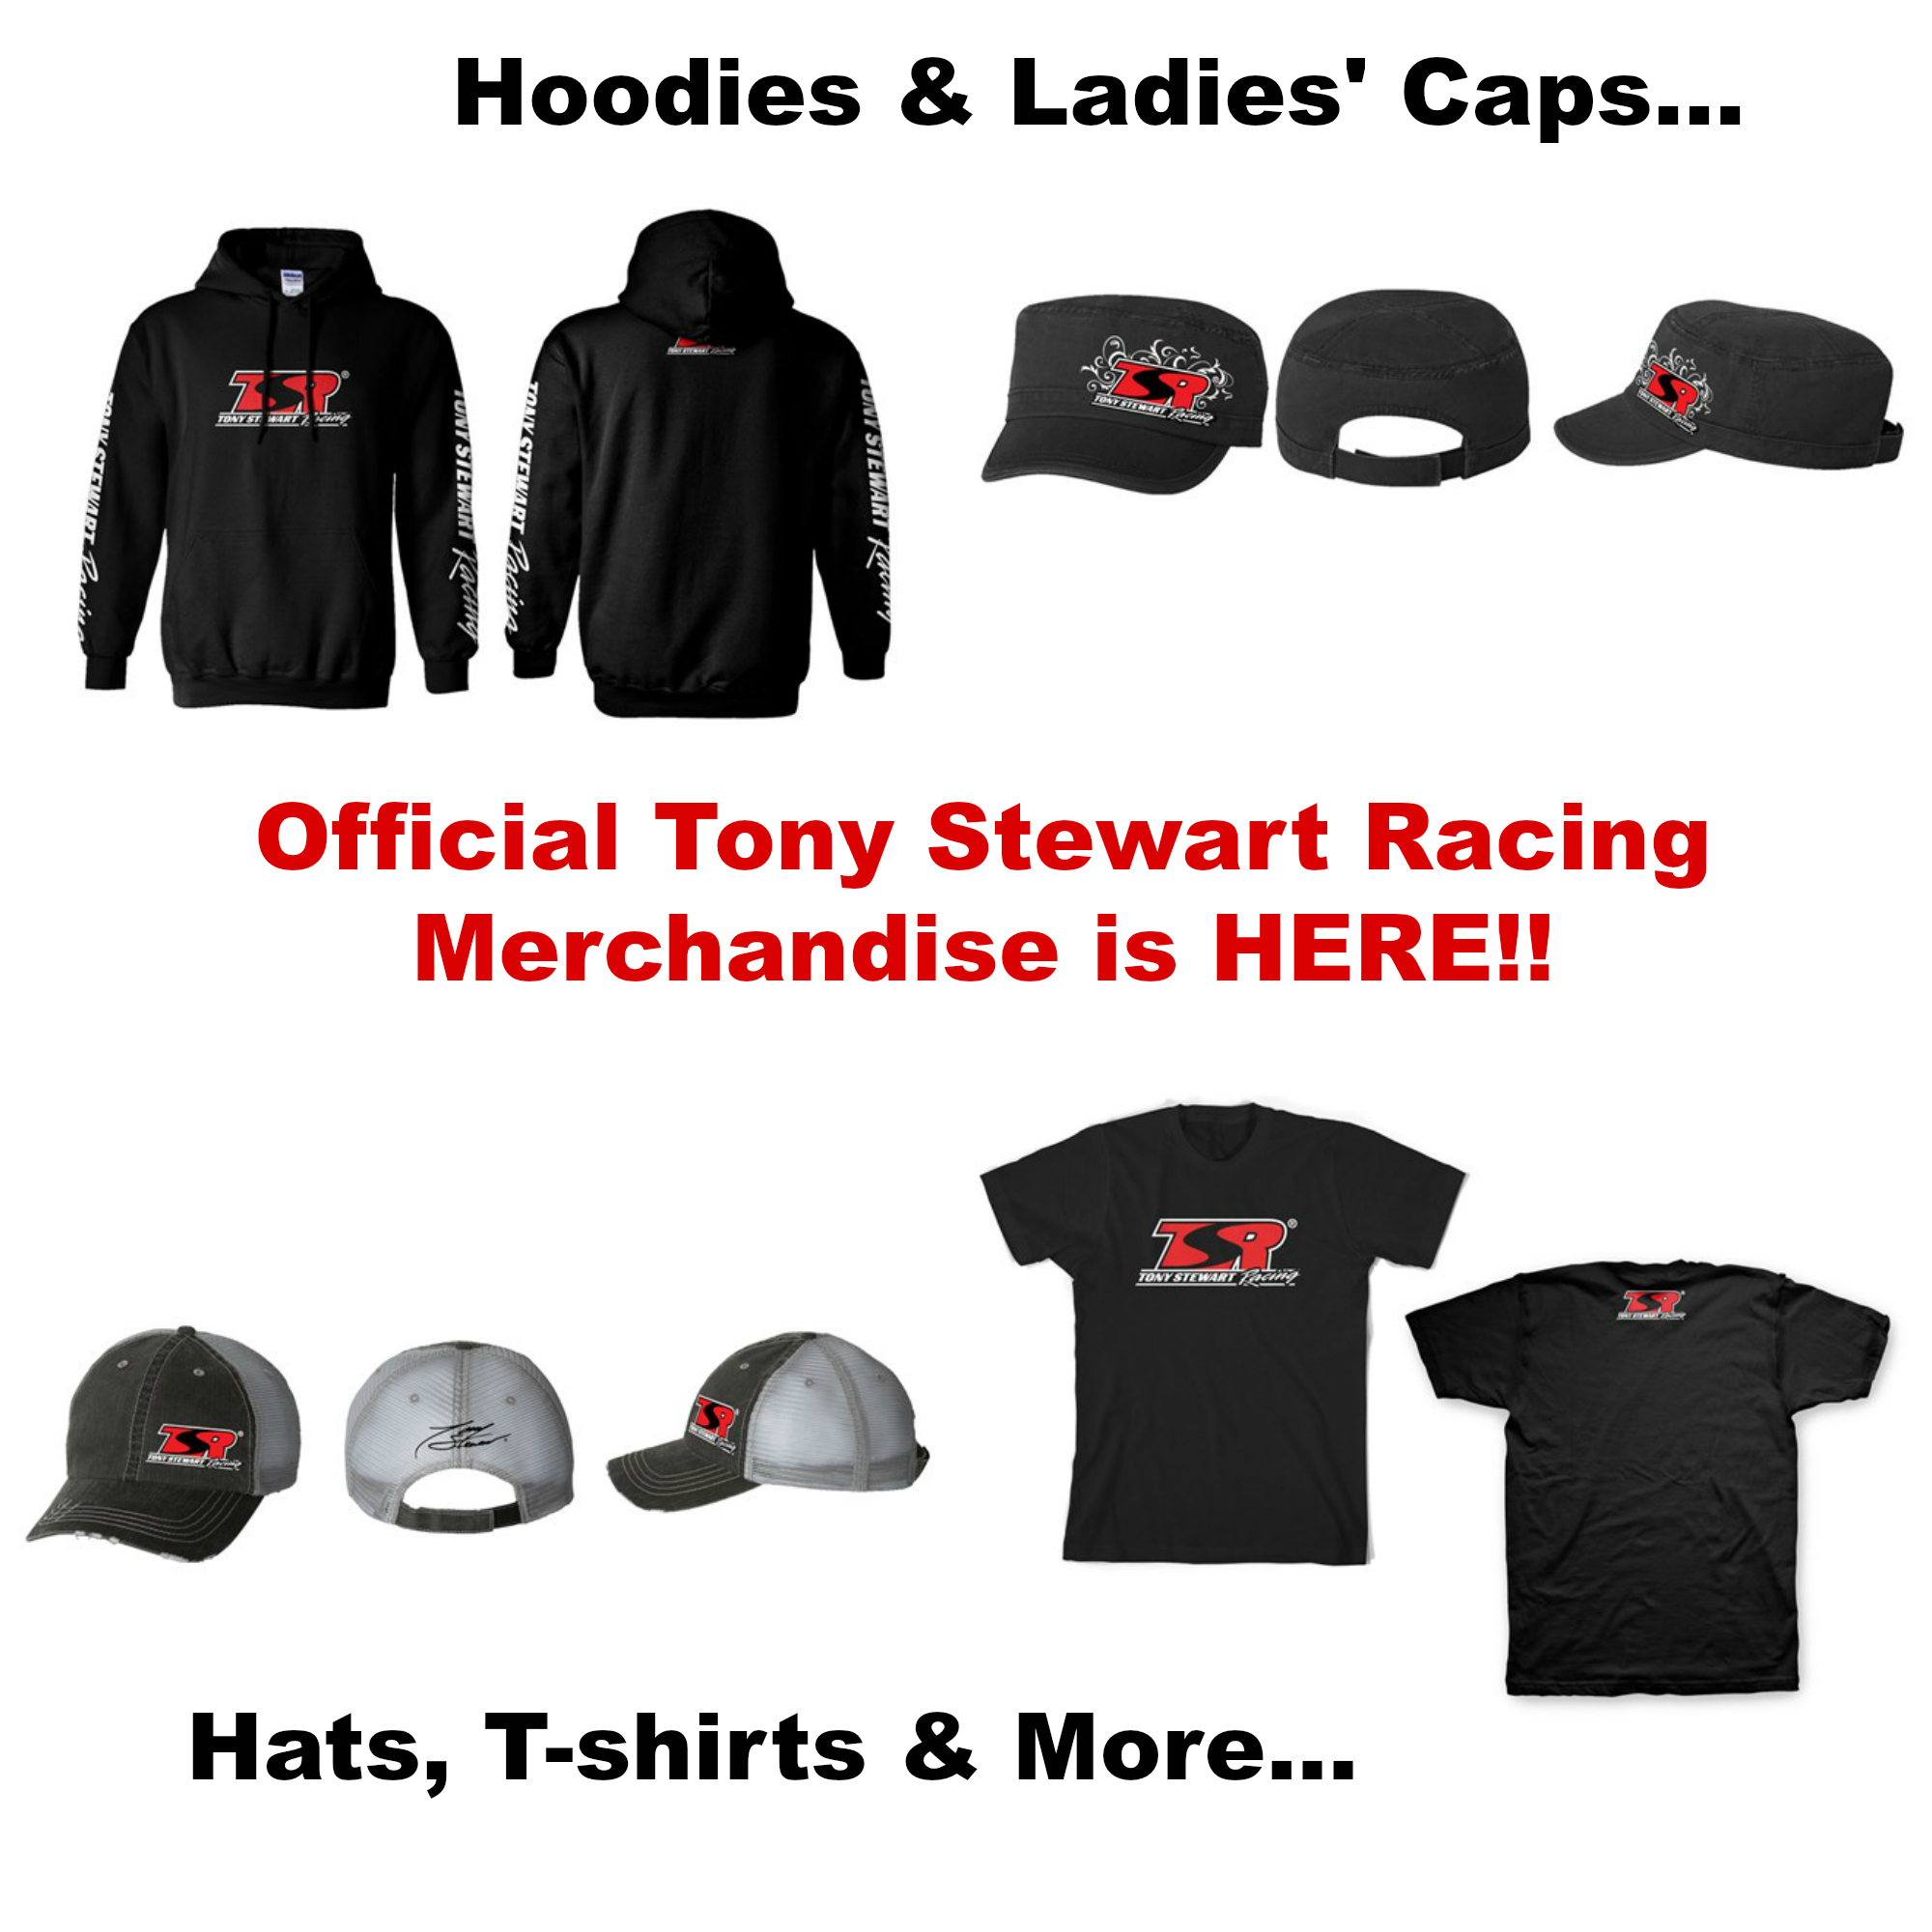 Now Available Tony Stewart Racing Official Merchandise Page 1